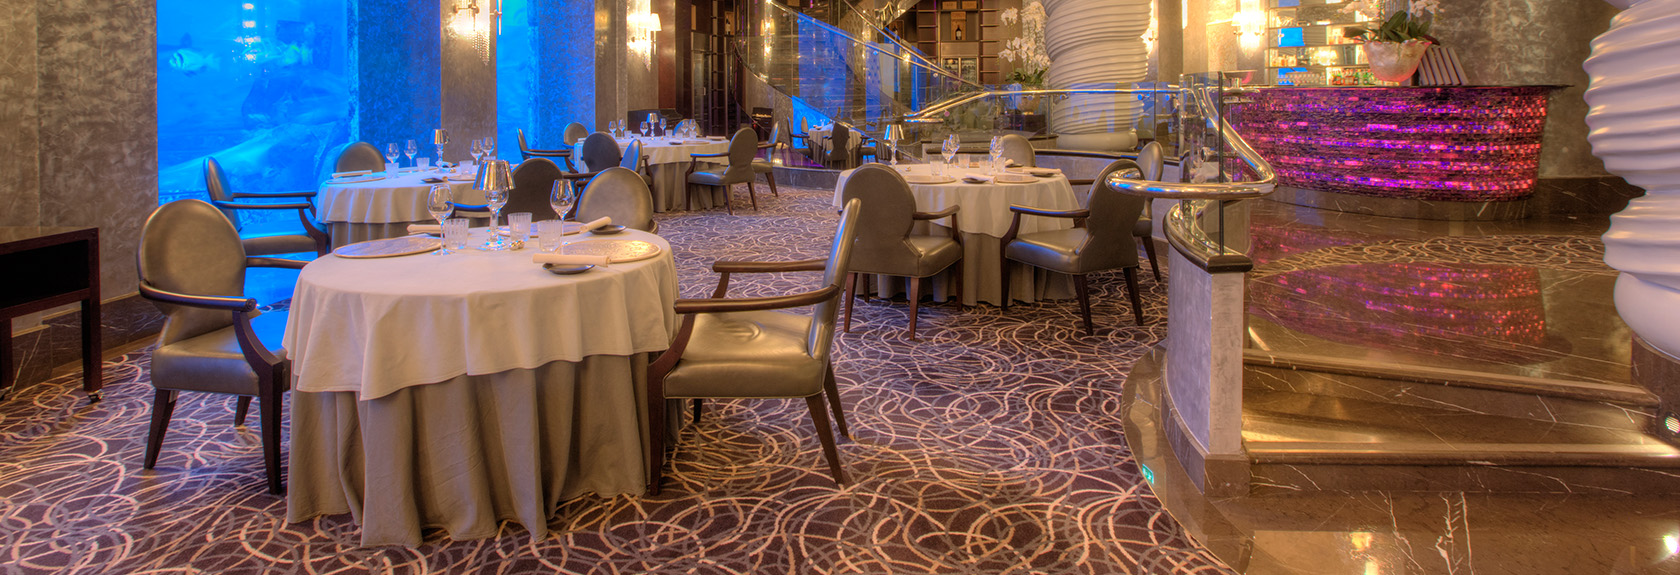 Lunch and dinner at Atlantis the Palm